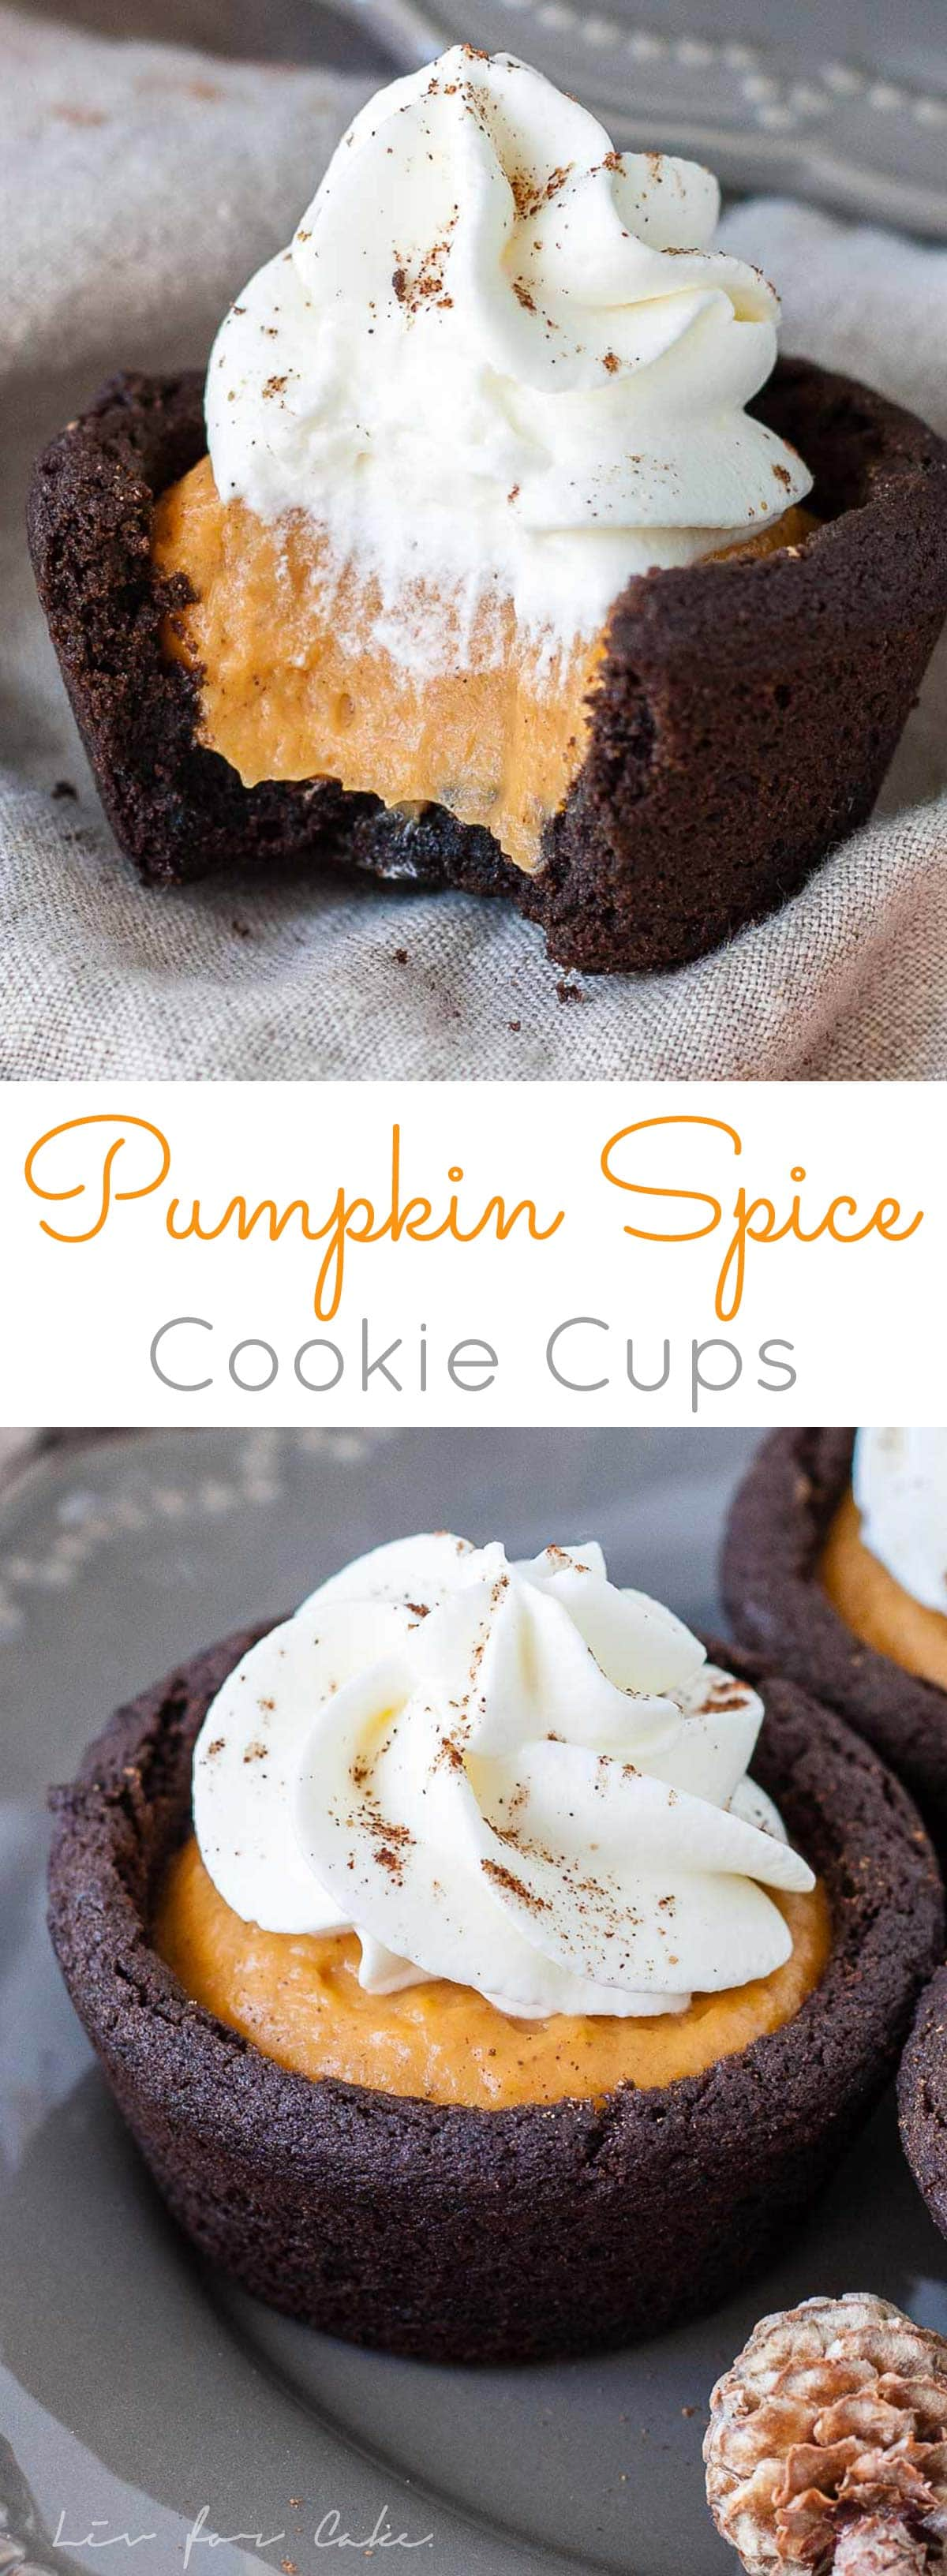 Satisfy your Fall cravings with these easy Pumpkin Spice Cookie Cups! Chewy chocolate cookie cups filled with pumpkin pudding and topped with whipped cream. | livforcake.com